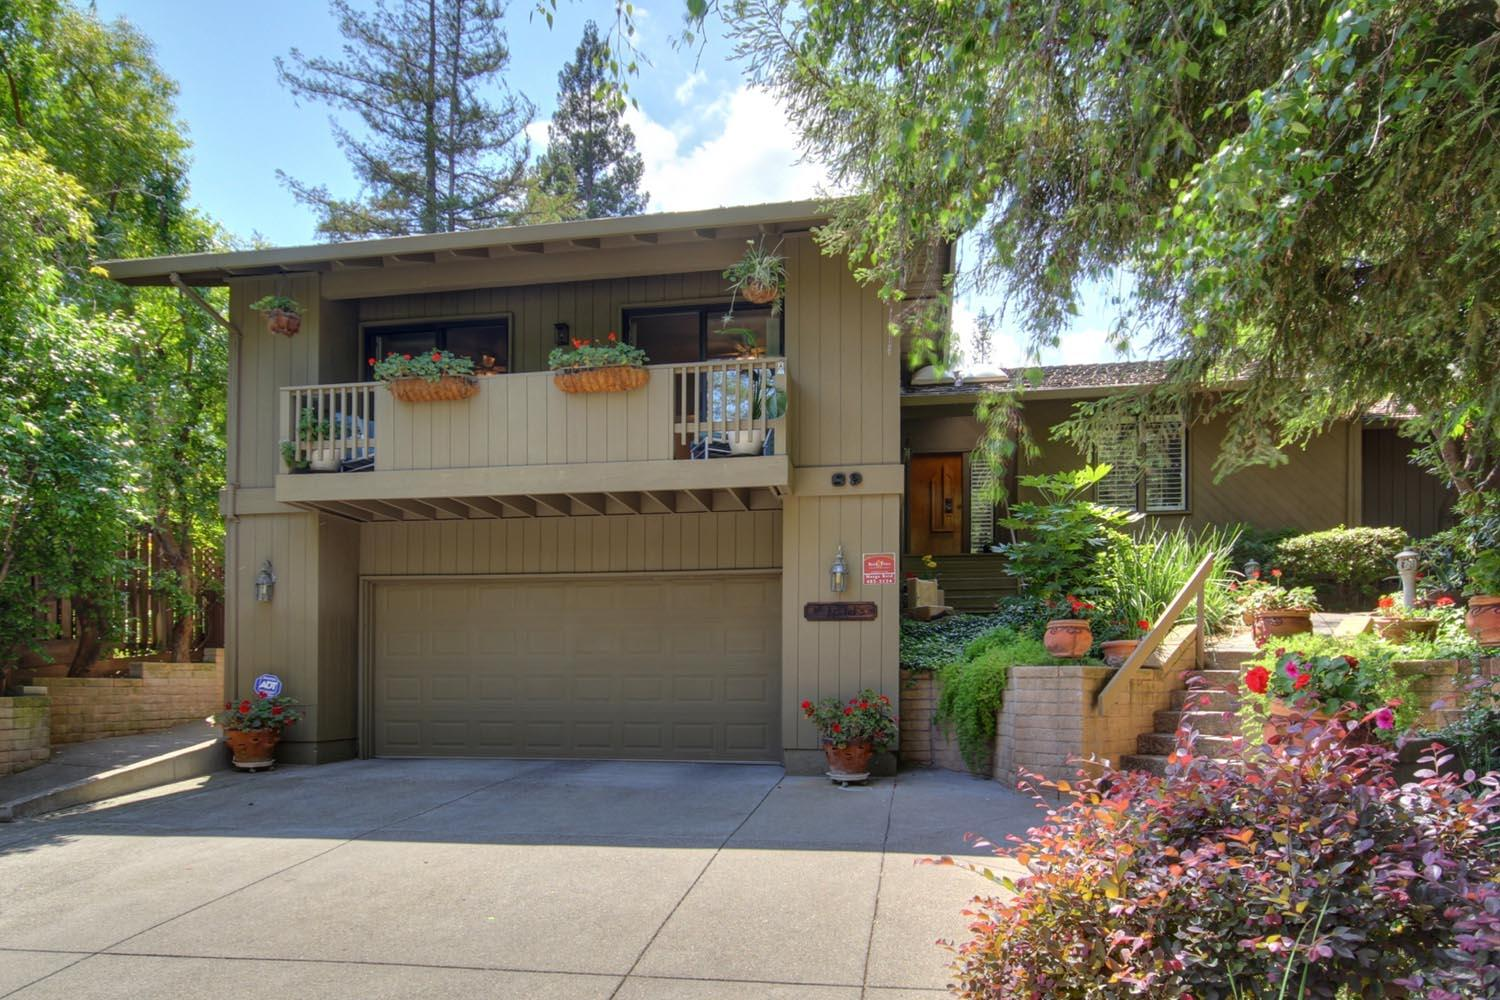 89 Covered Bridge Rd, Carmichael, CA 95608 - Estimate and Home ...